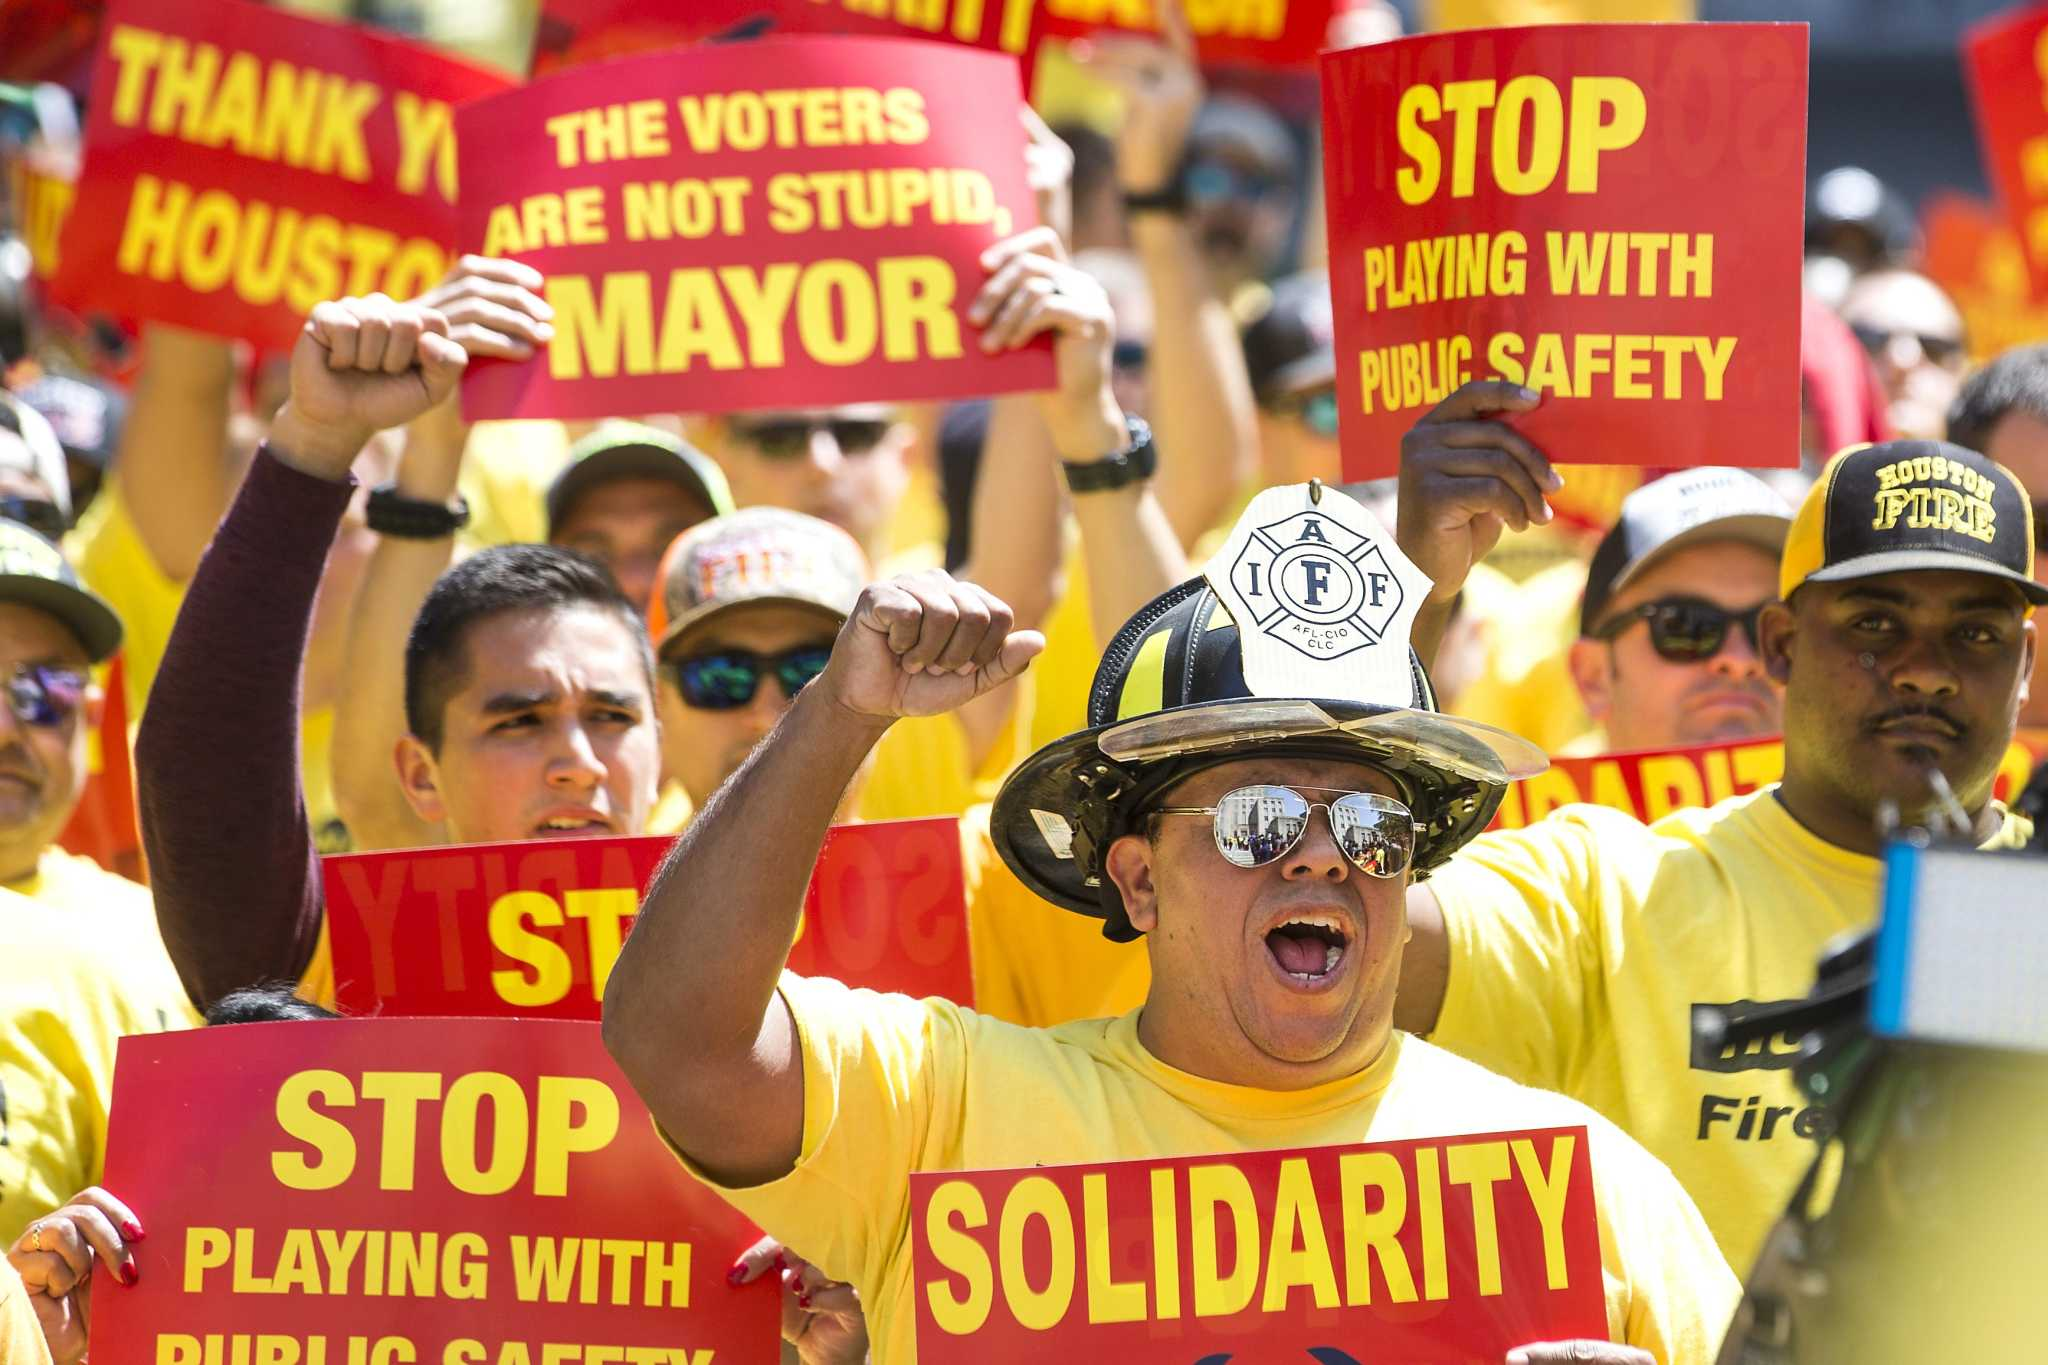 Enter arbitration with Houston firefighters [Opinion]